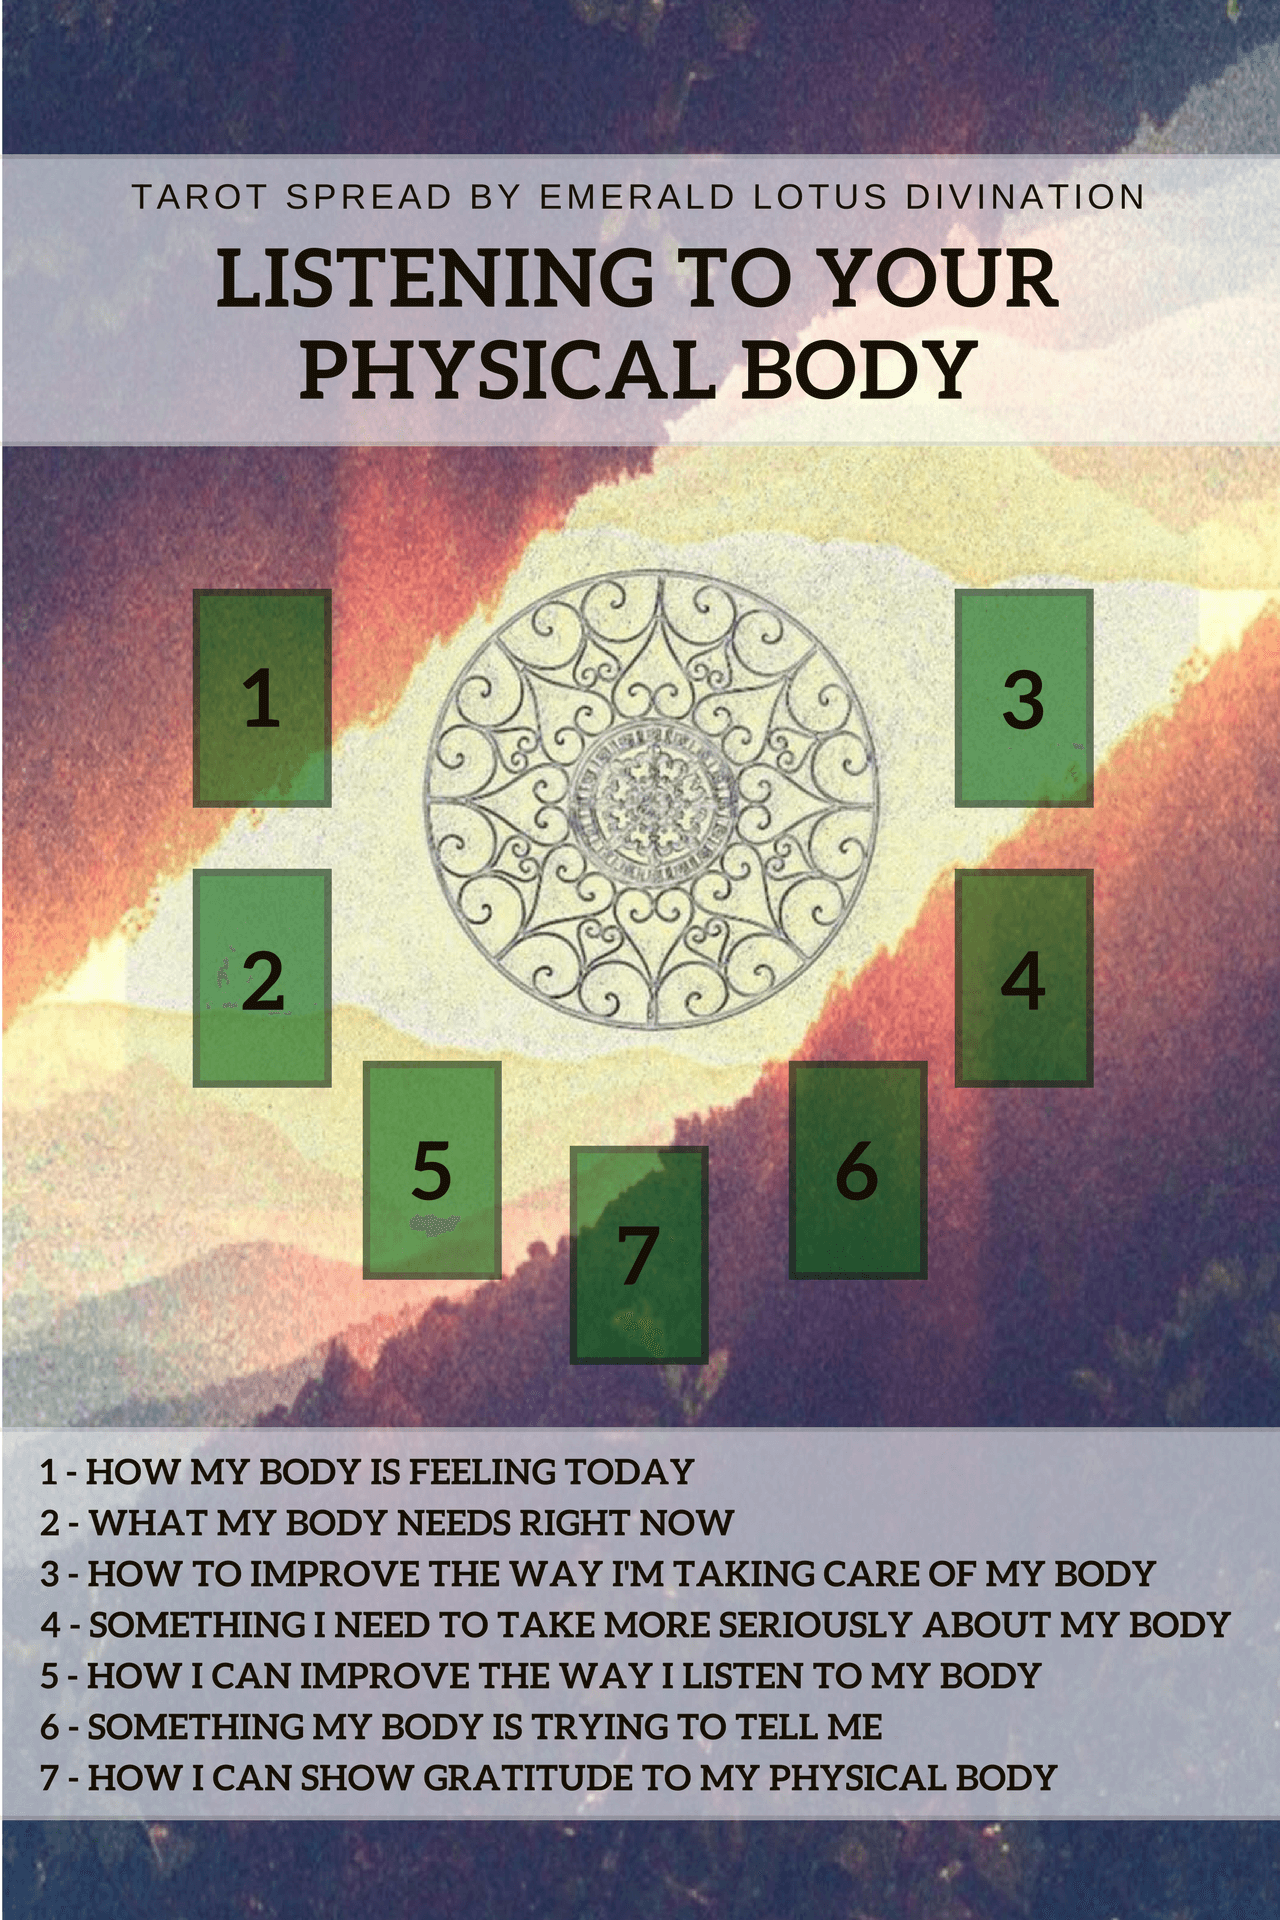 listening-to-your-physical-body-tarot-spread-2.png